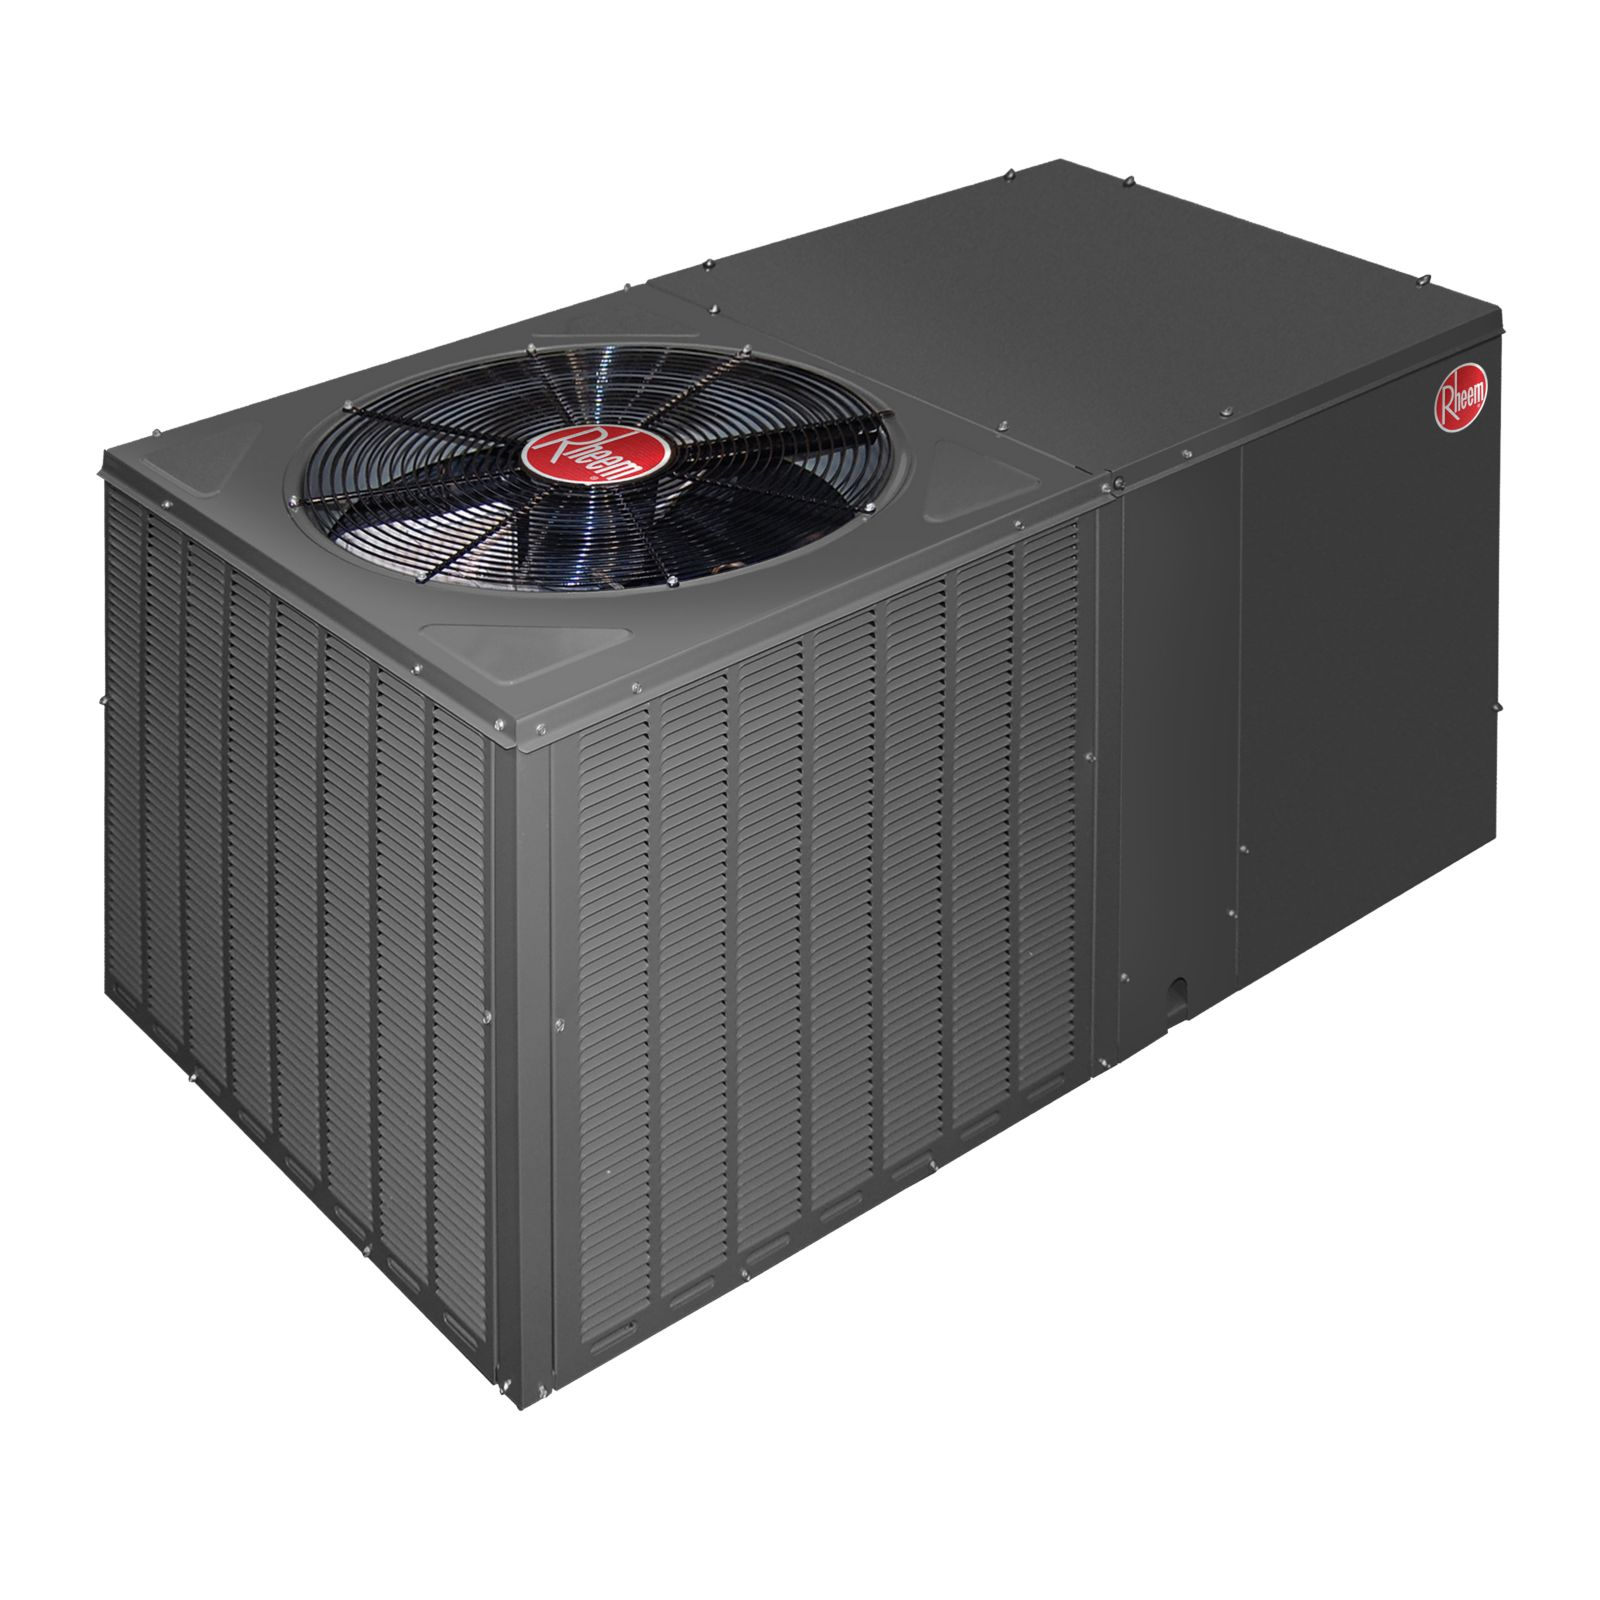 Rheem RQRM-A042JK000 - Classic 3 1/2 Ton, 15/16 SEER, Packaged Heat Pump With Horizontal Discharge, 208-230 V, 1 Ph, 60 Hz